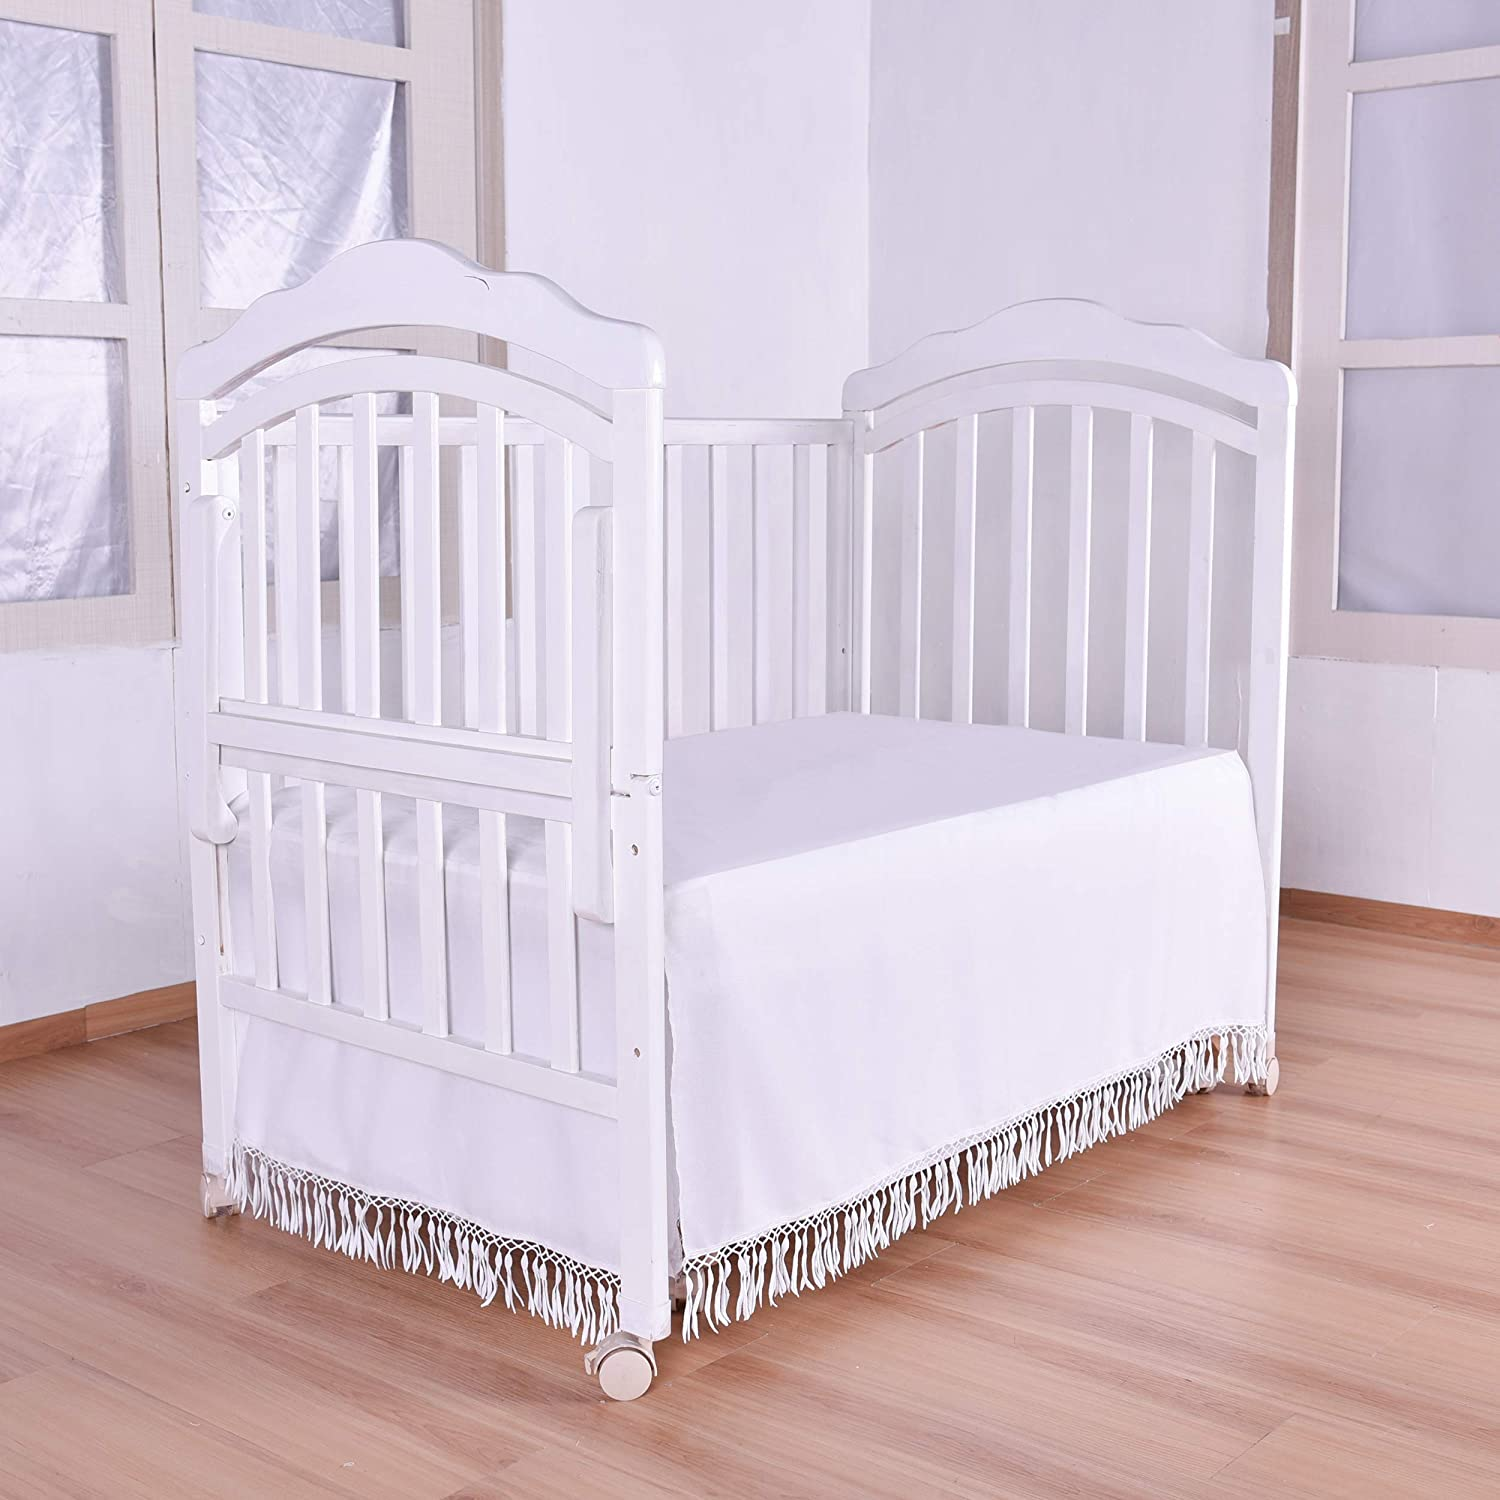 Ruffle Crib Skirt With Lace Trim Nursery Bed For Baby Extech Ct70 Ac Circuit Load Tester Girls White Droplets